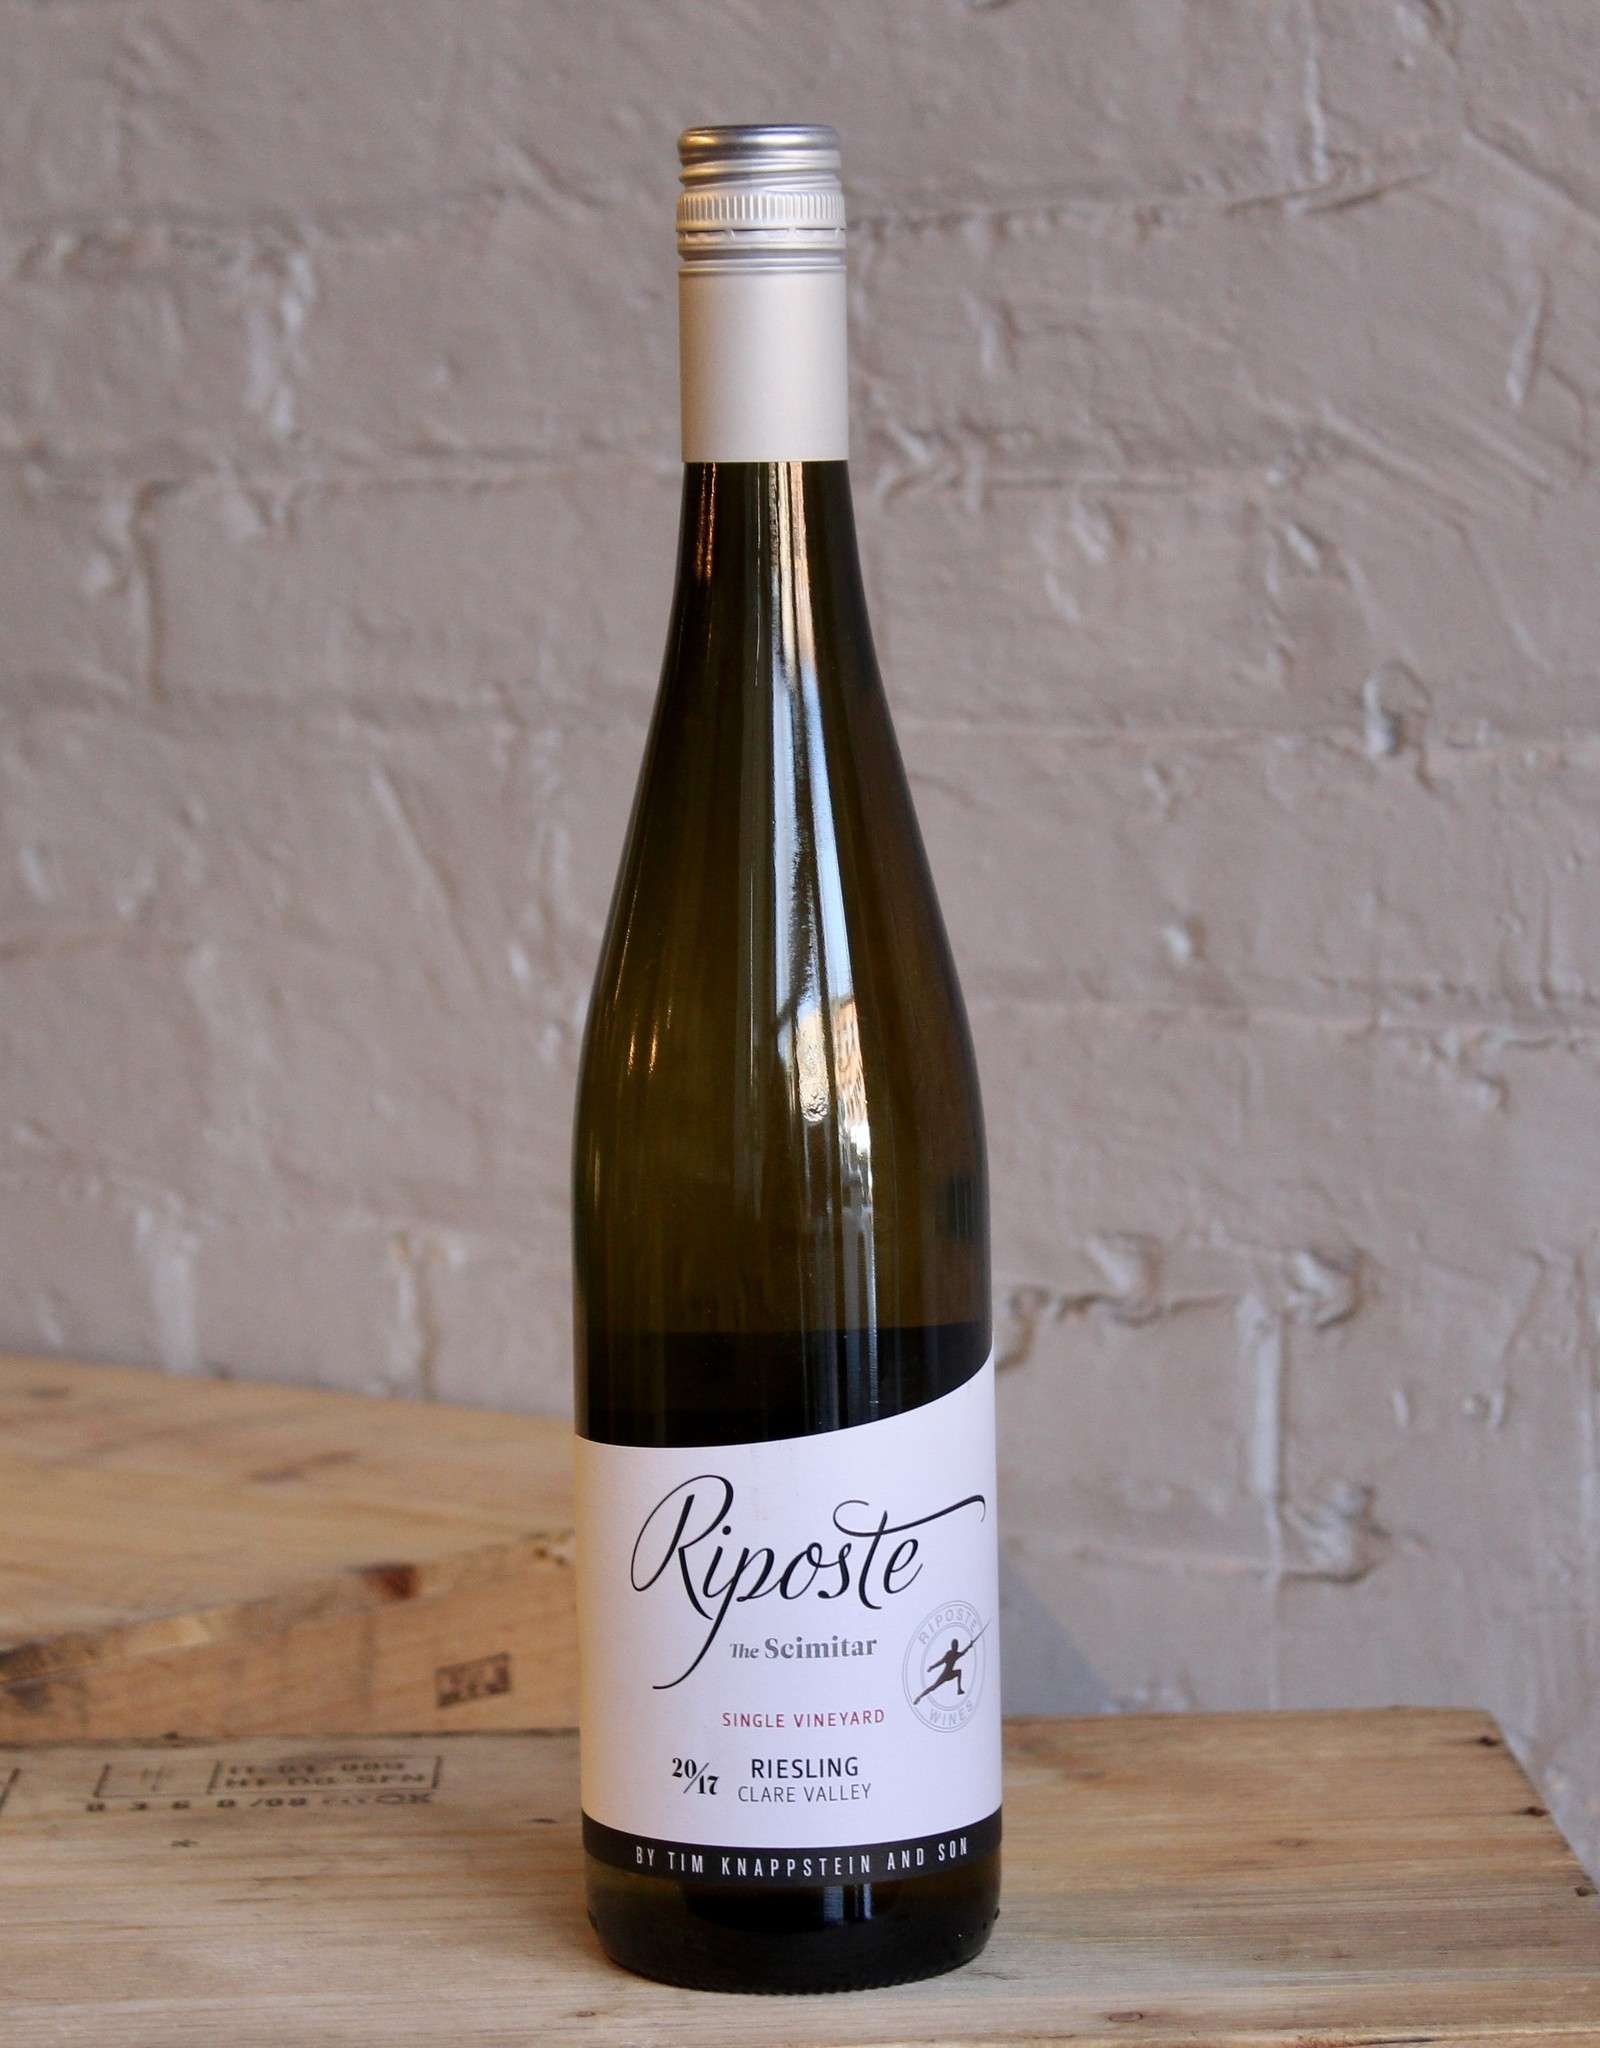 Wine 2017 Riposte The Scimitar Riesling - Clare Valley, South Australia (750ml)